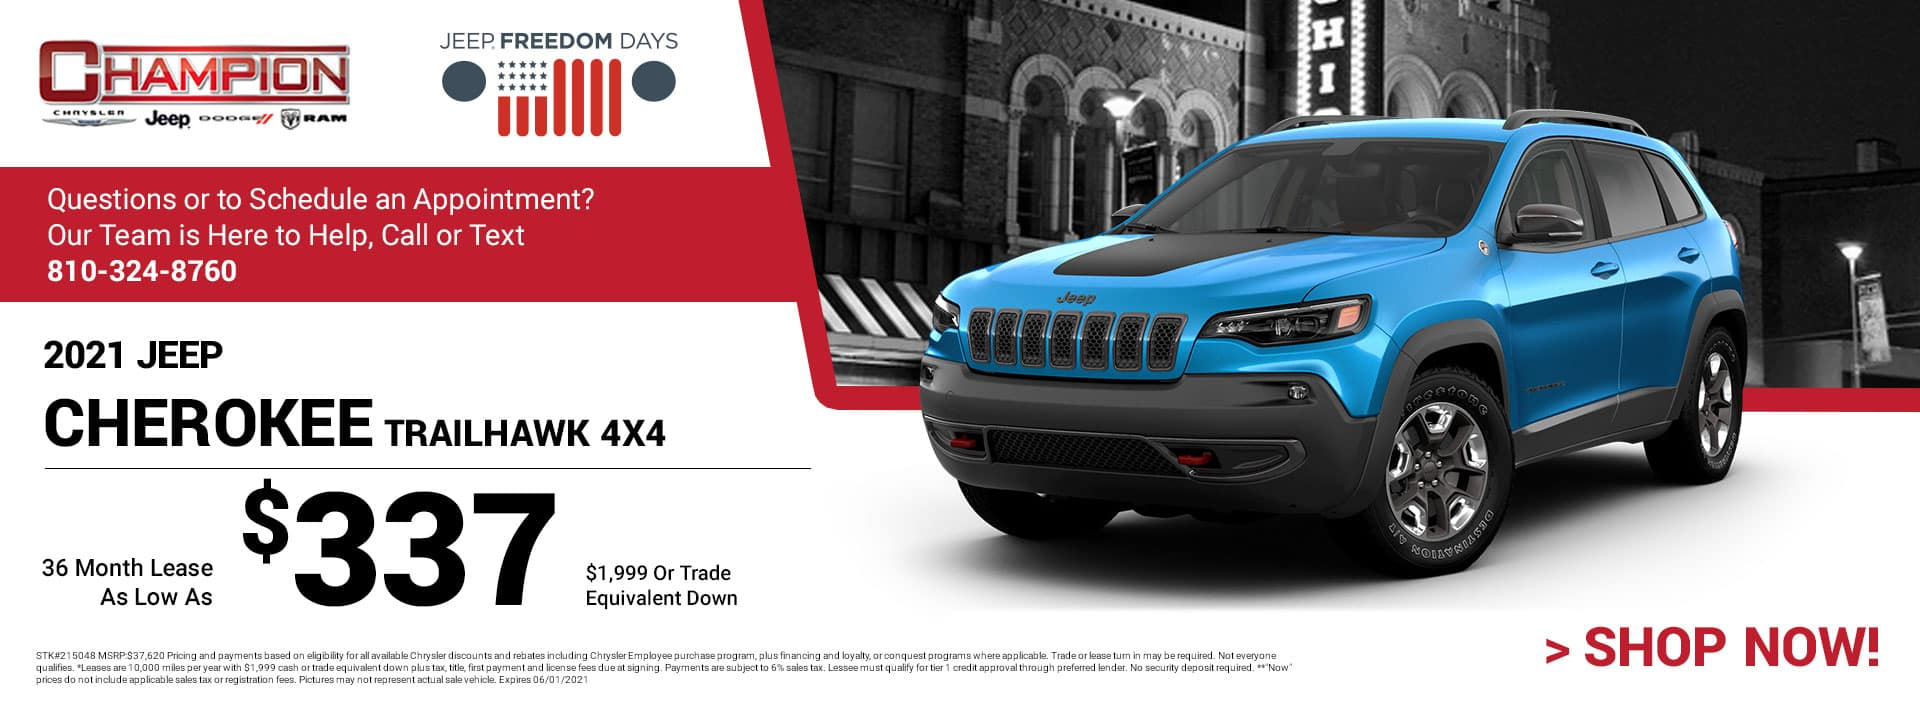 2021 Jeep Cherokee Trailhawk 4x4 215048 $37,620 $1,999 OR TRADE EQUIVALENT DOWN 36 $337